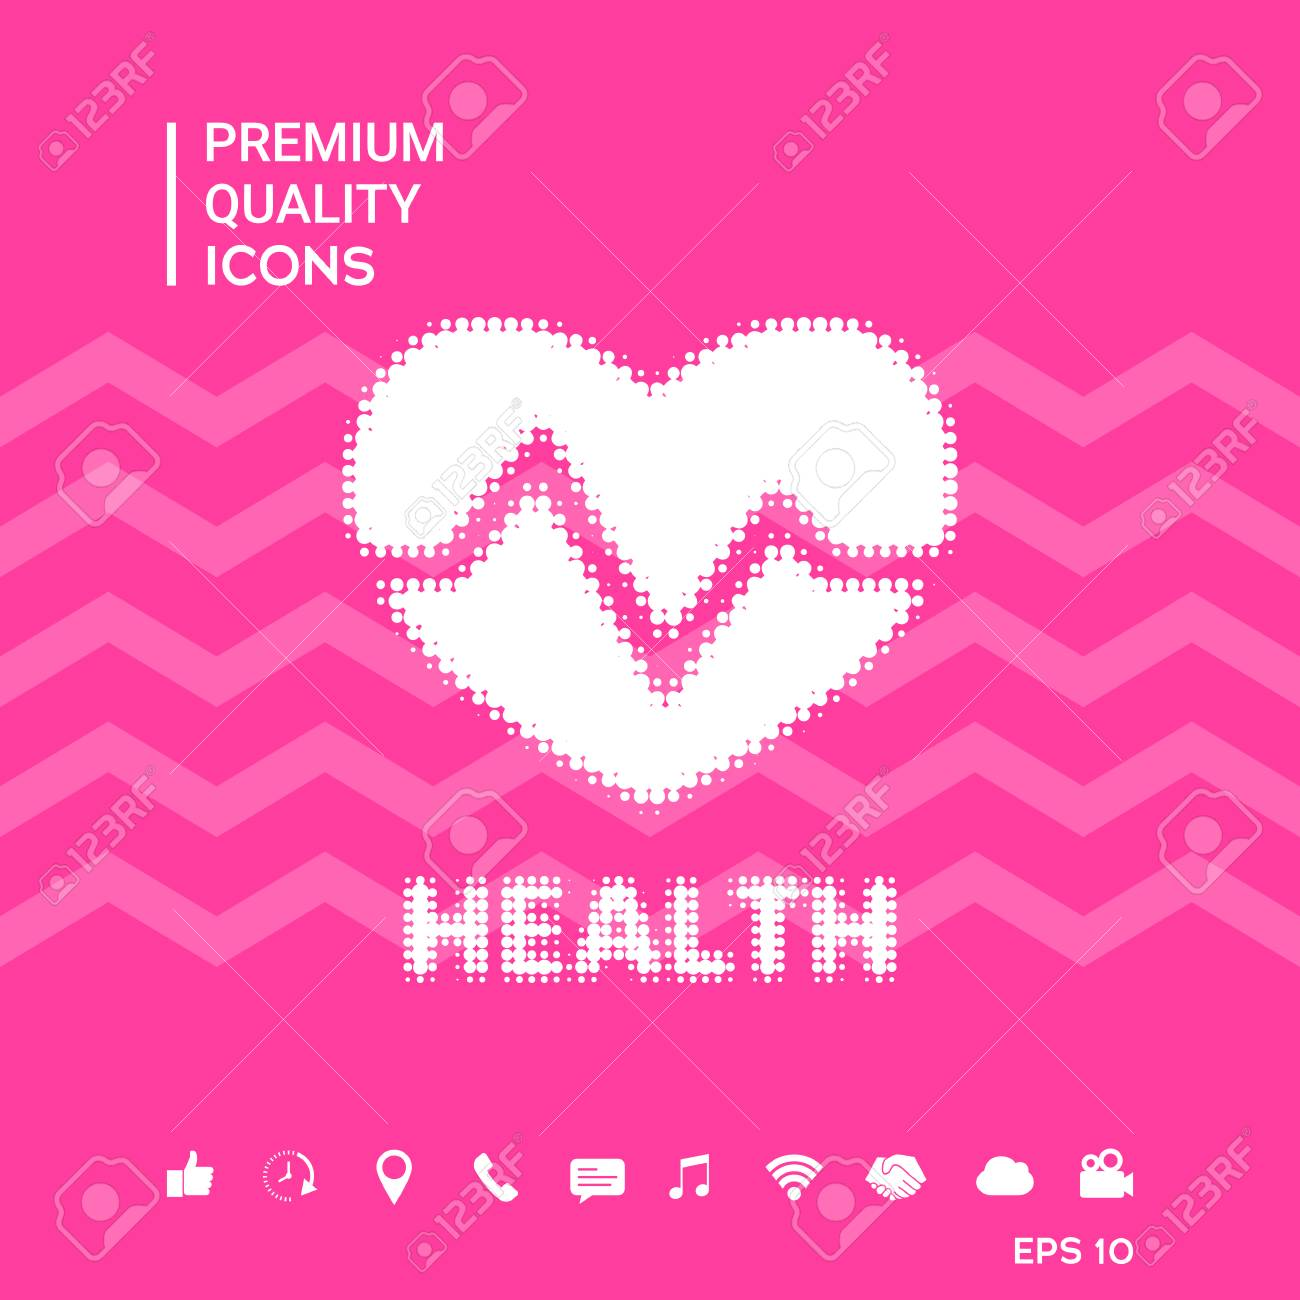 Heart Signs And Symbols Graphic Elements For Your Design Royalty